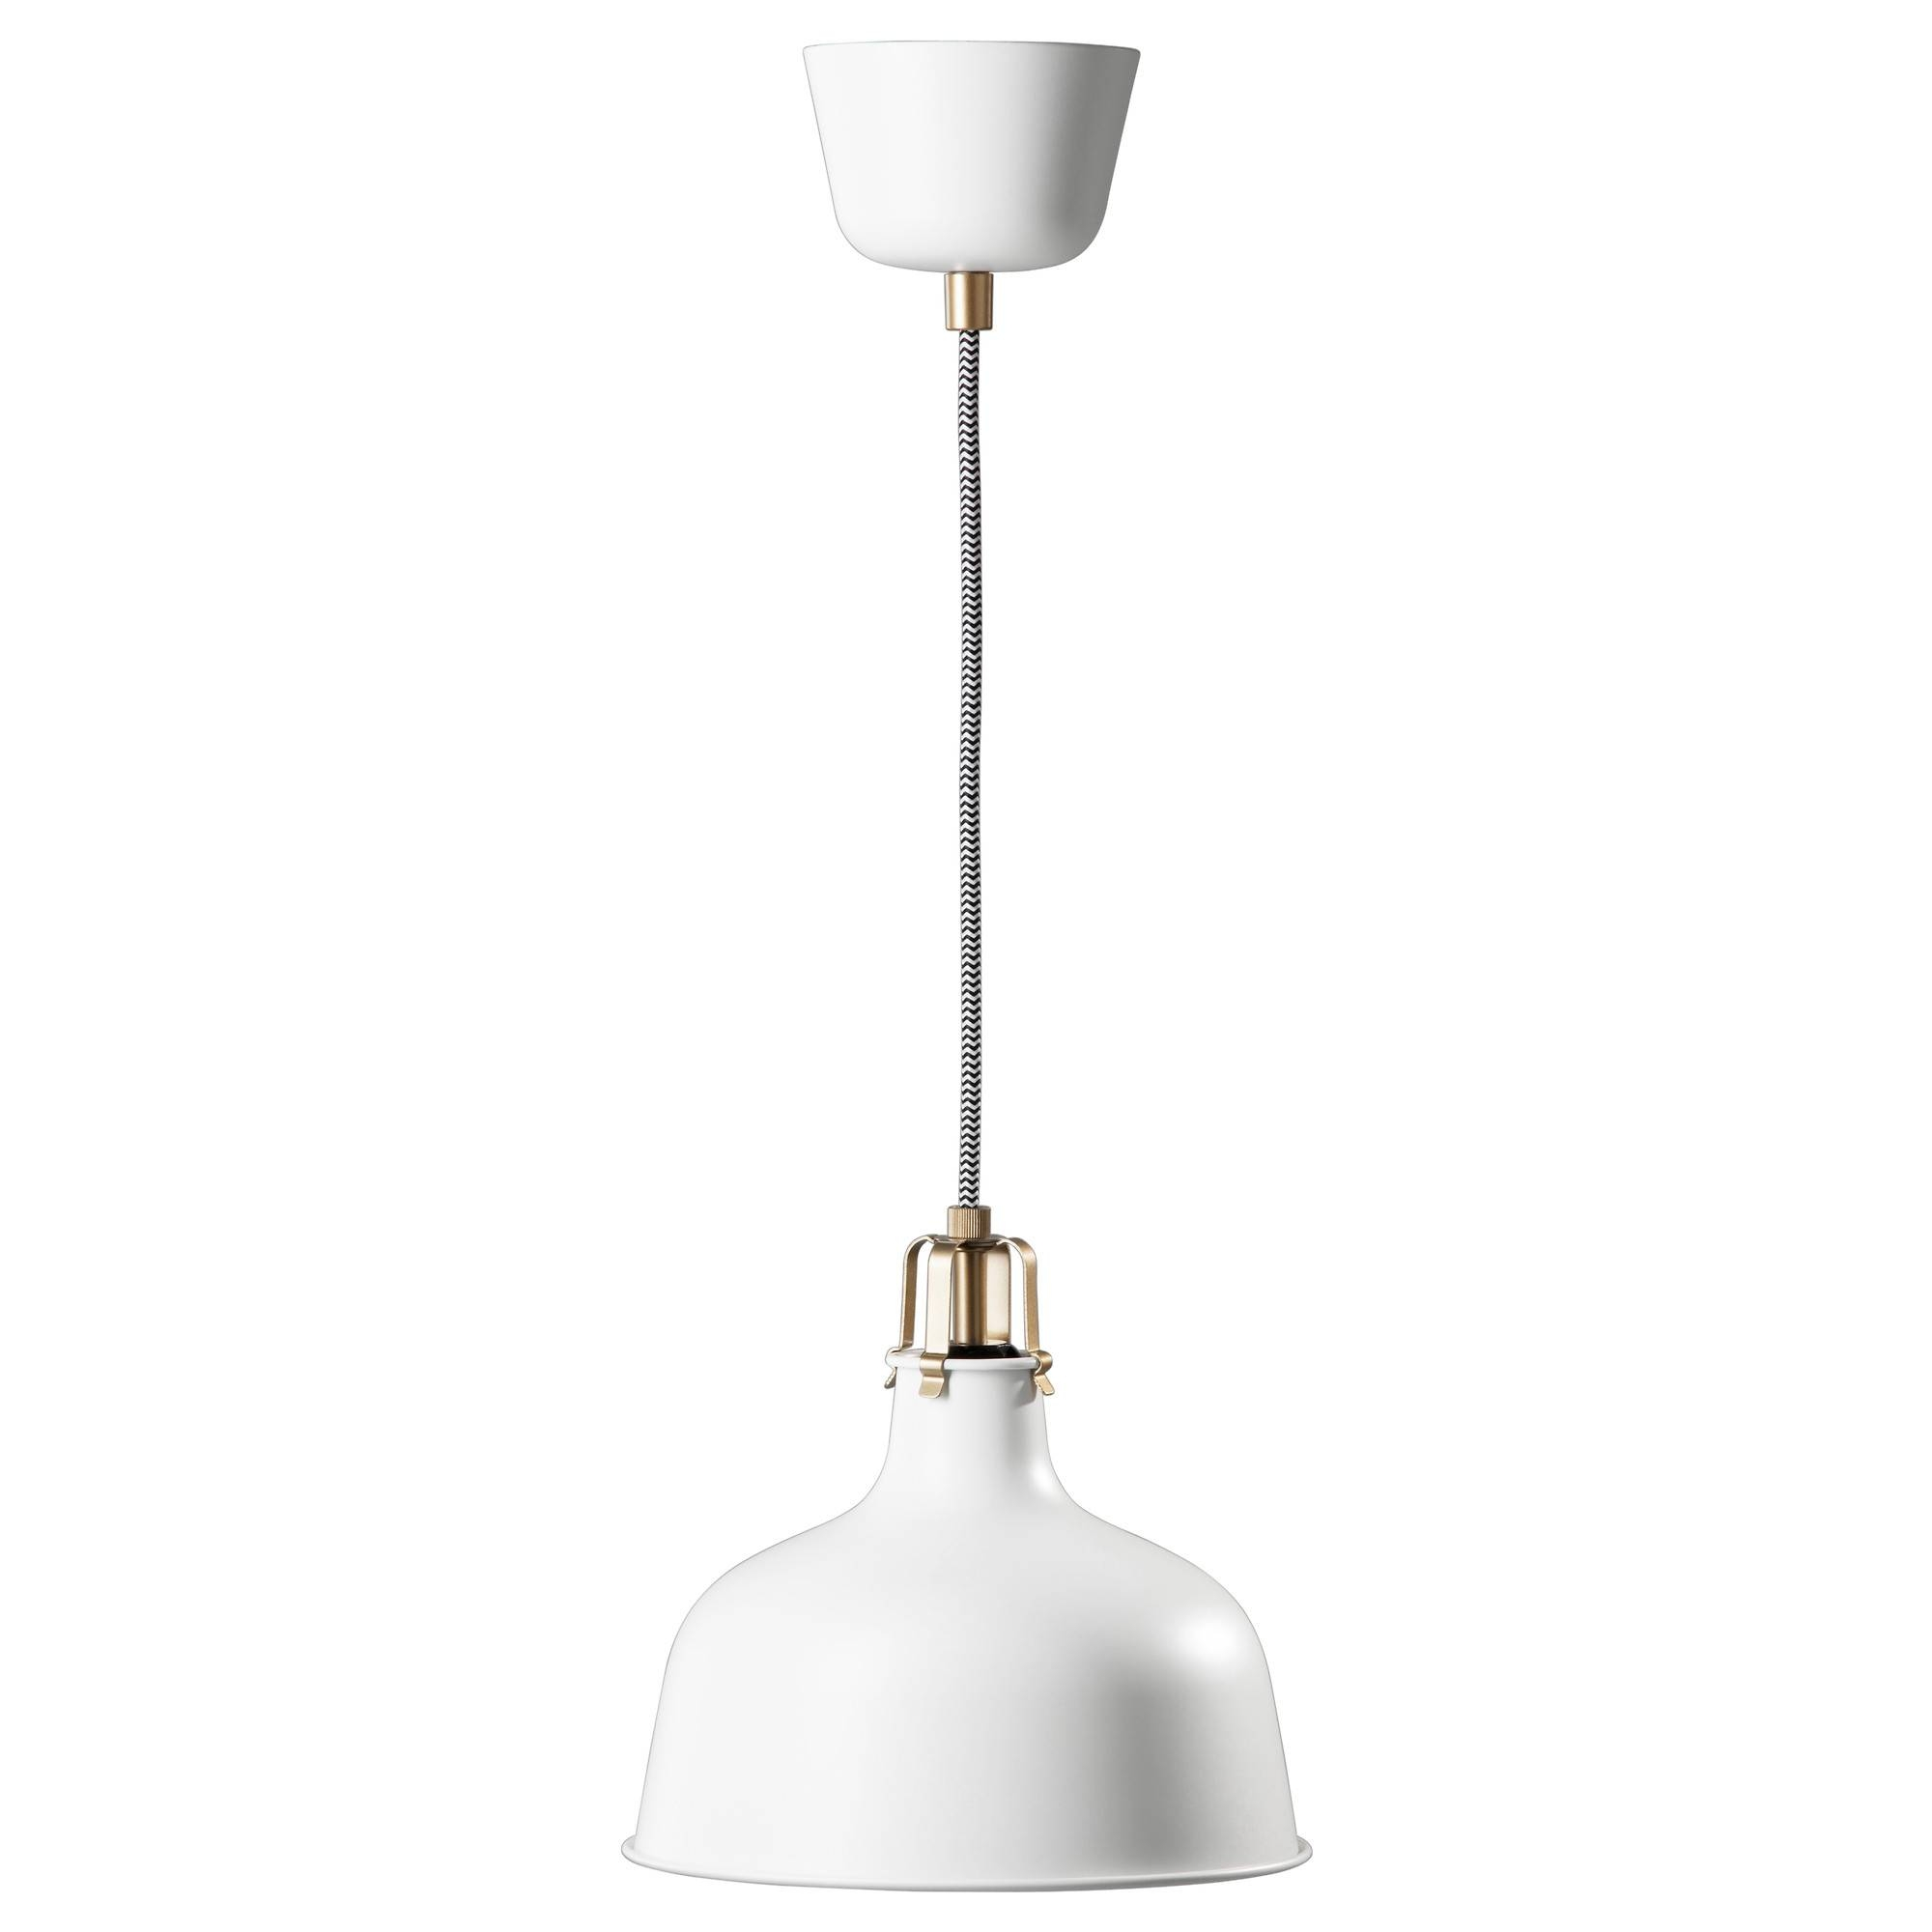 Ranarp Pendant Lamp Off White 23 Cm – Ikea With Ikea Pendant Lighting (View 3 of 15)